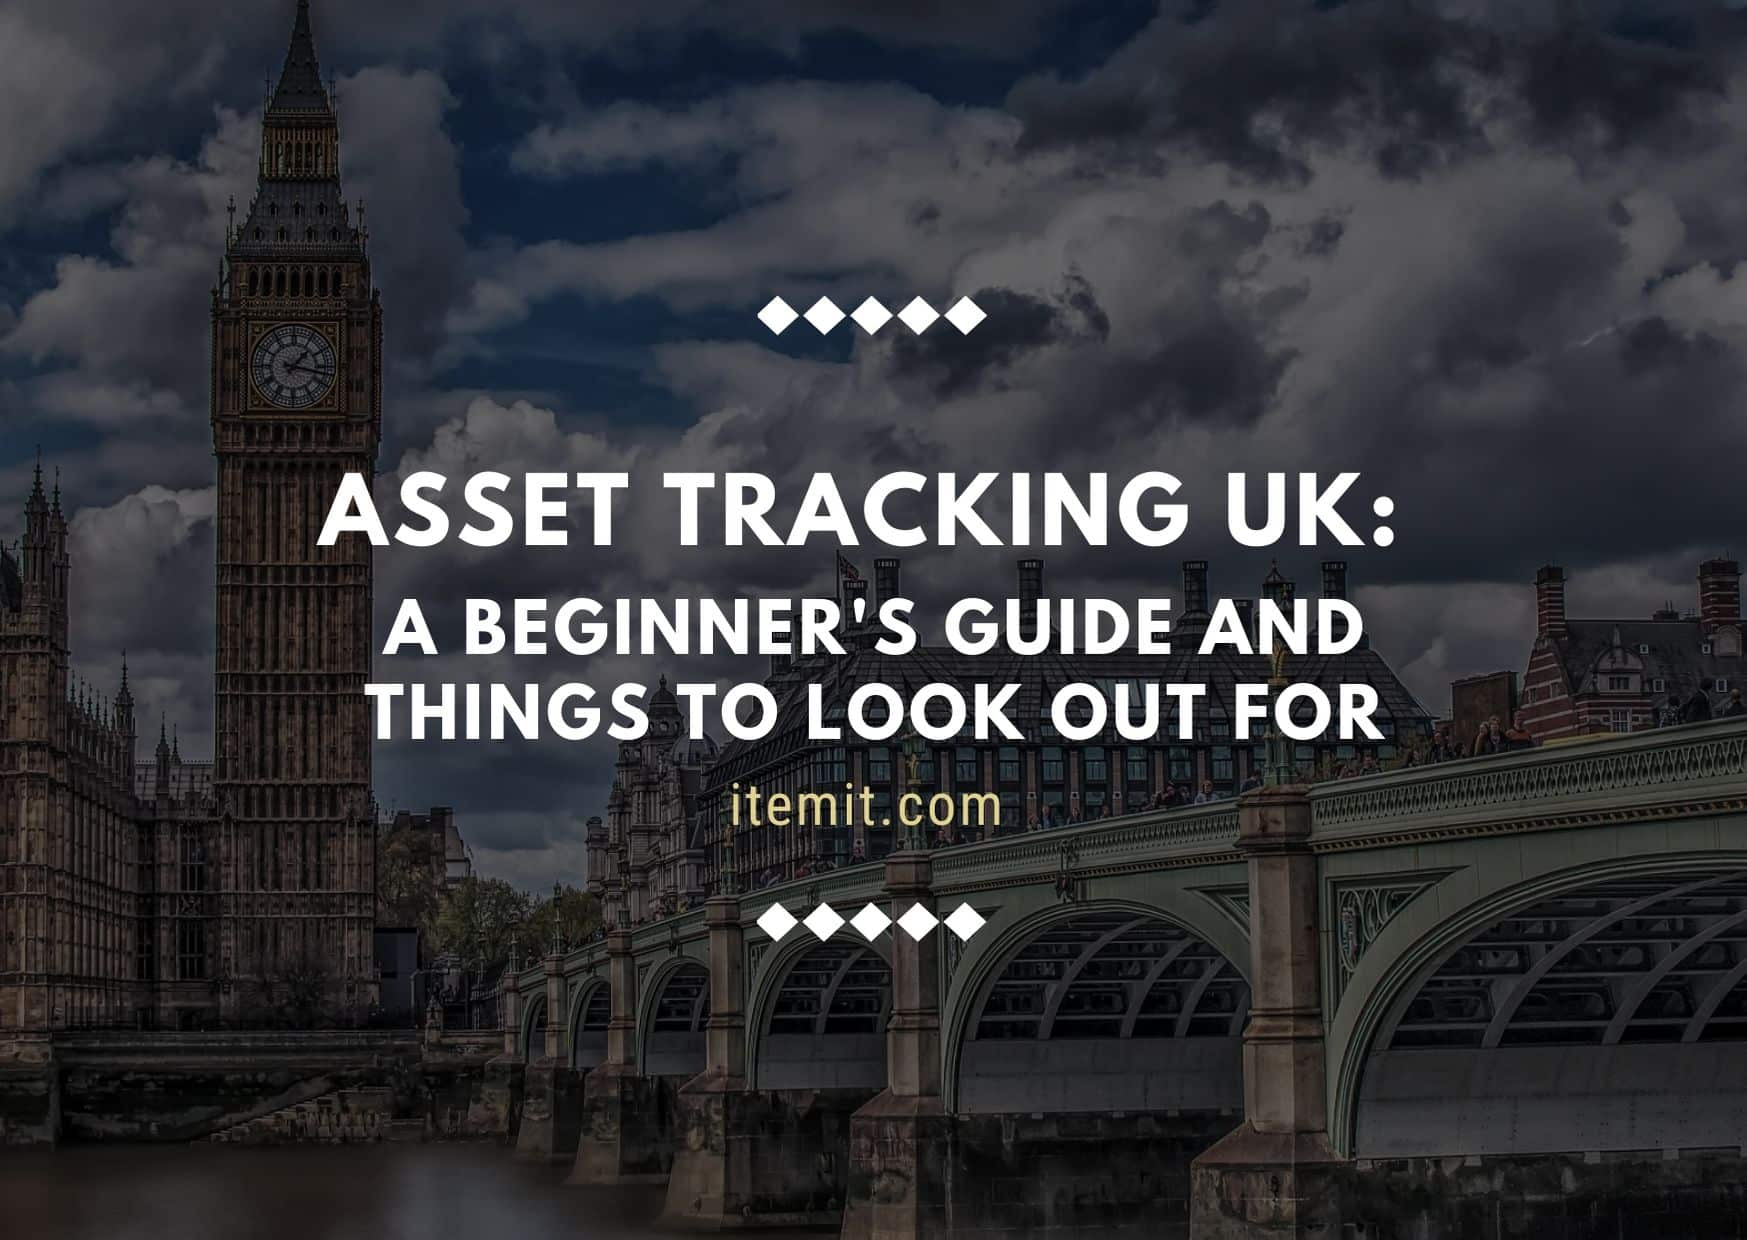 Asset tracking uk - A beginner's guide and things to look out for